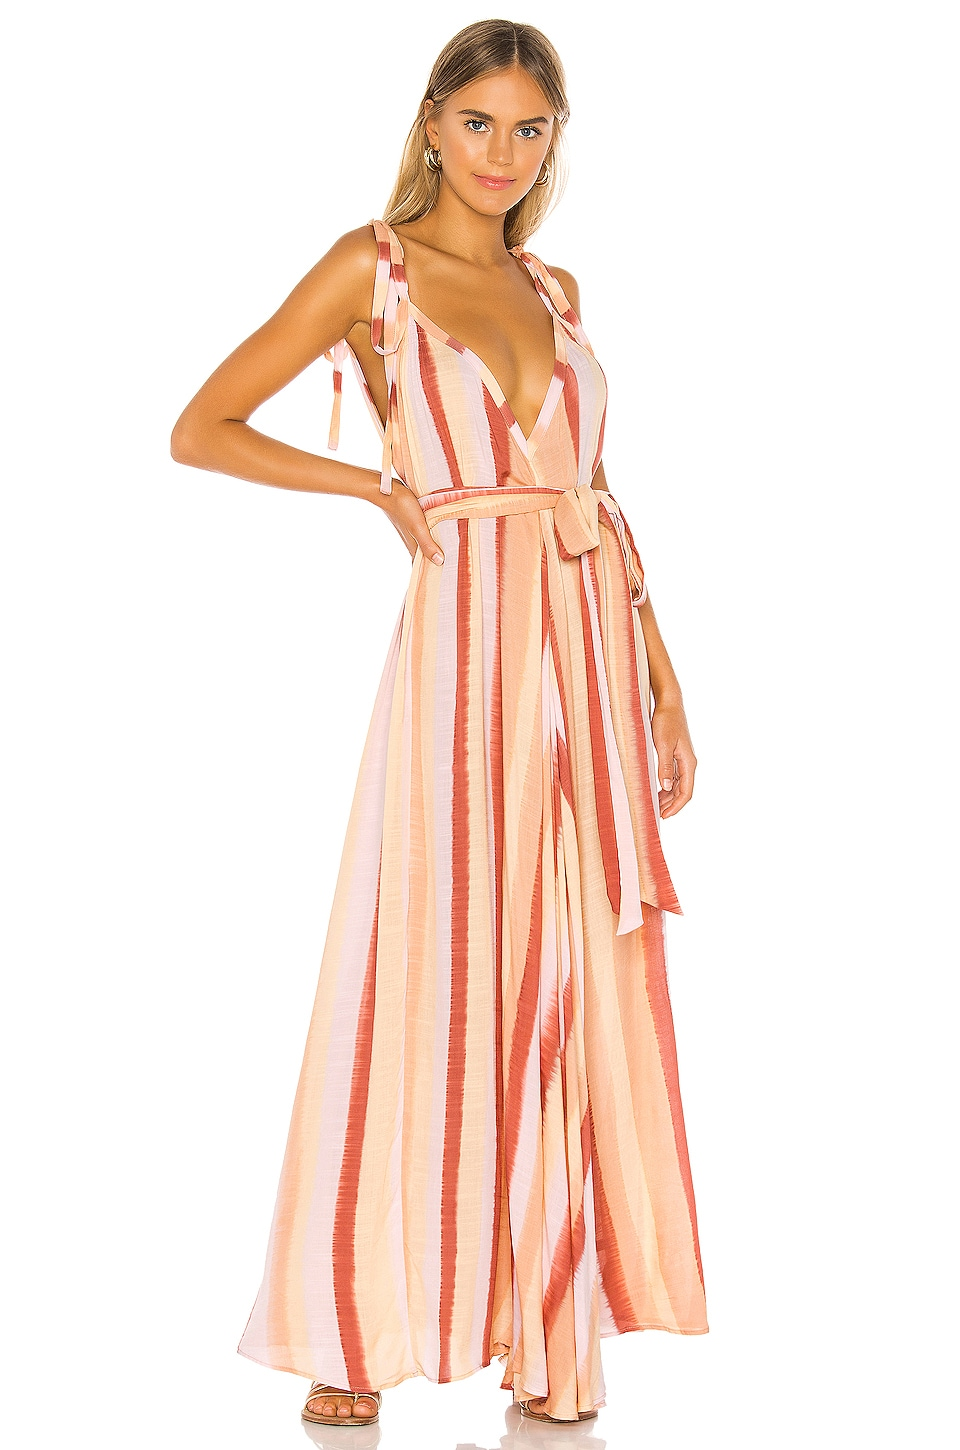 Indah Vivian Modern Goddess Maxi Dress in Sunrise Stripe